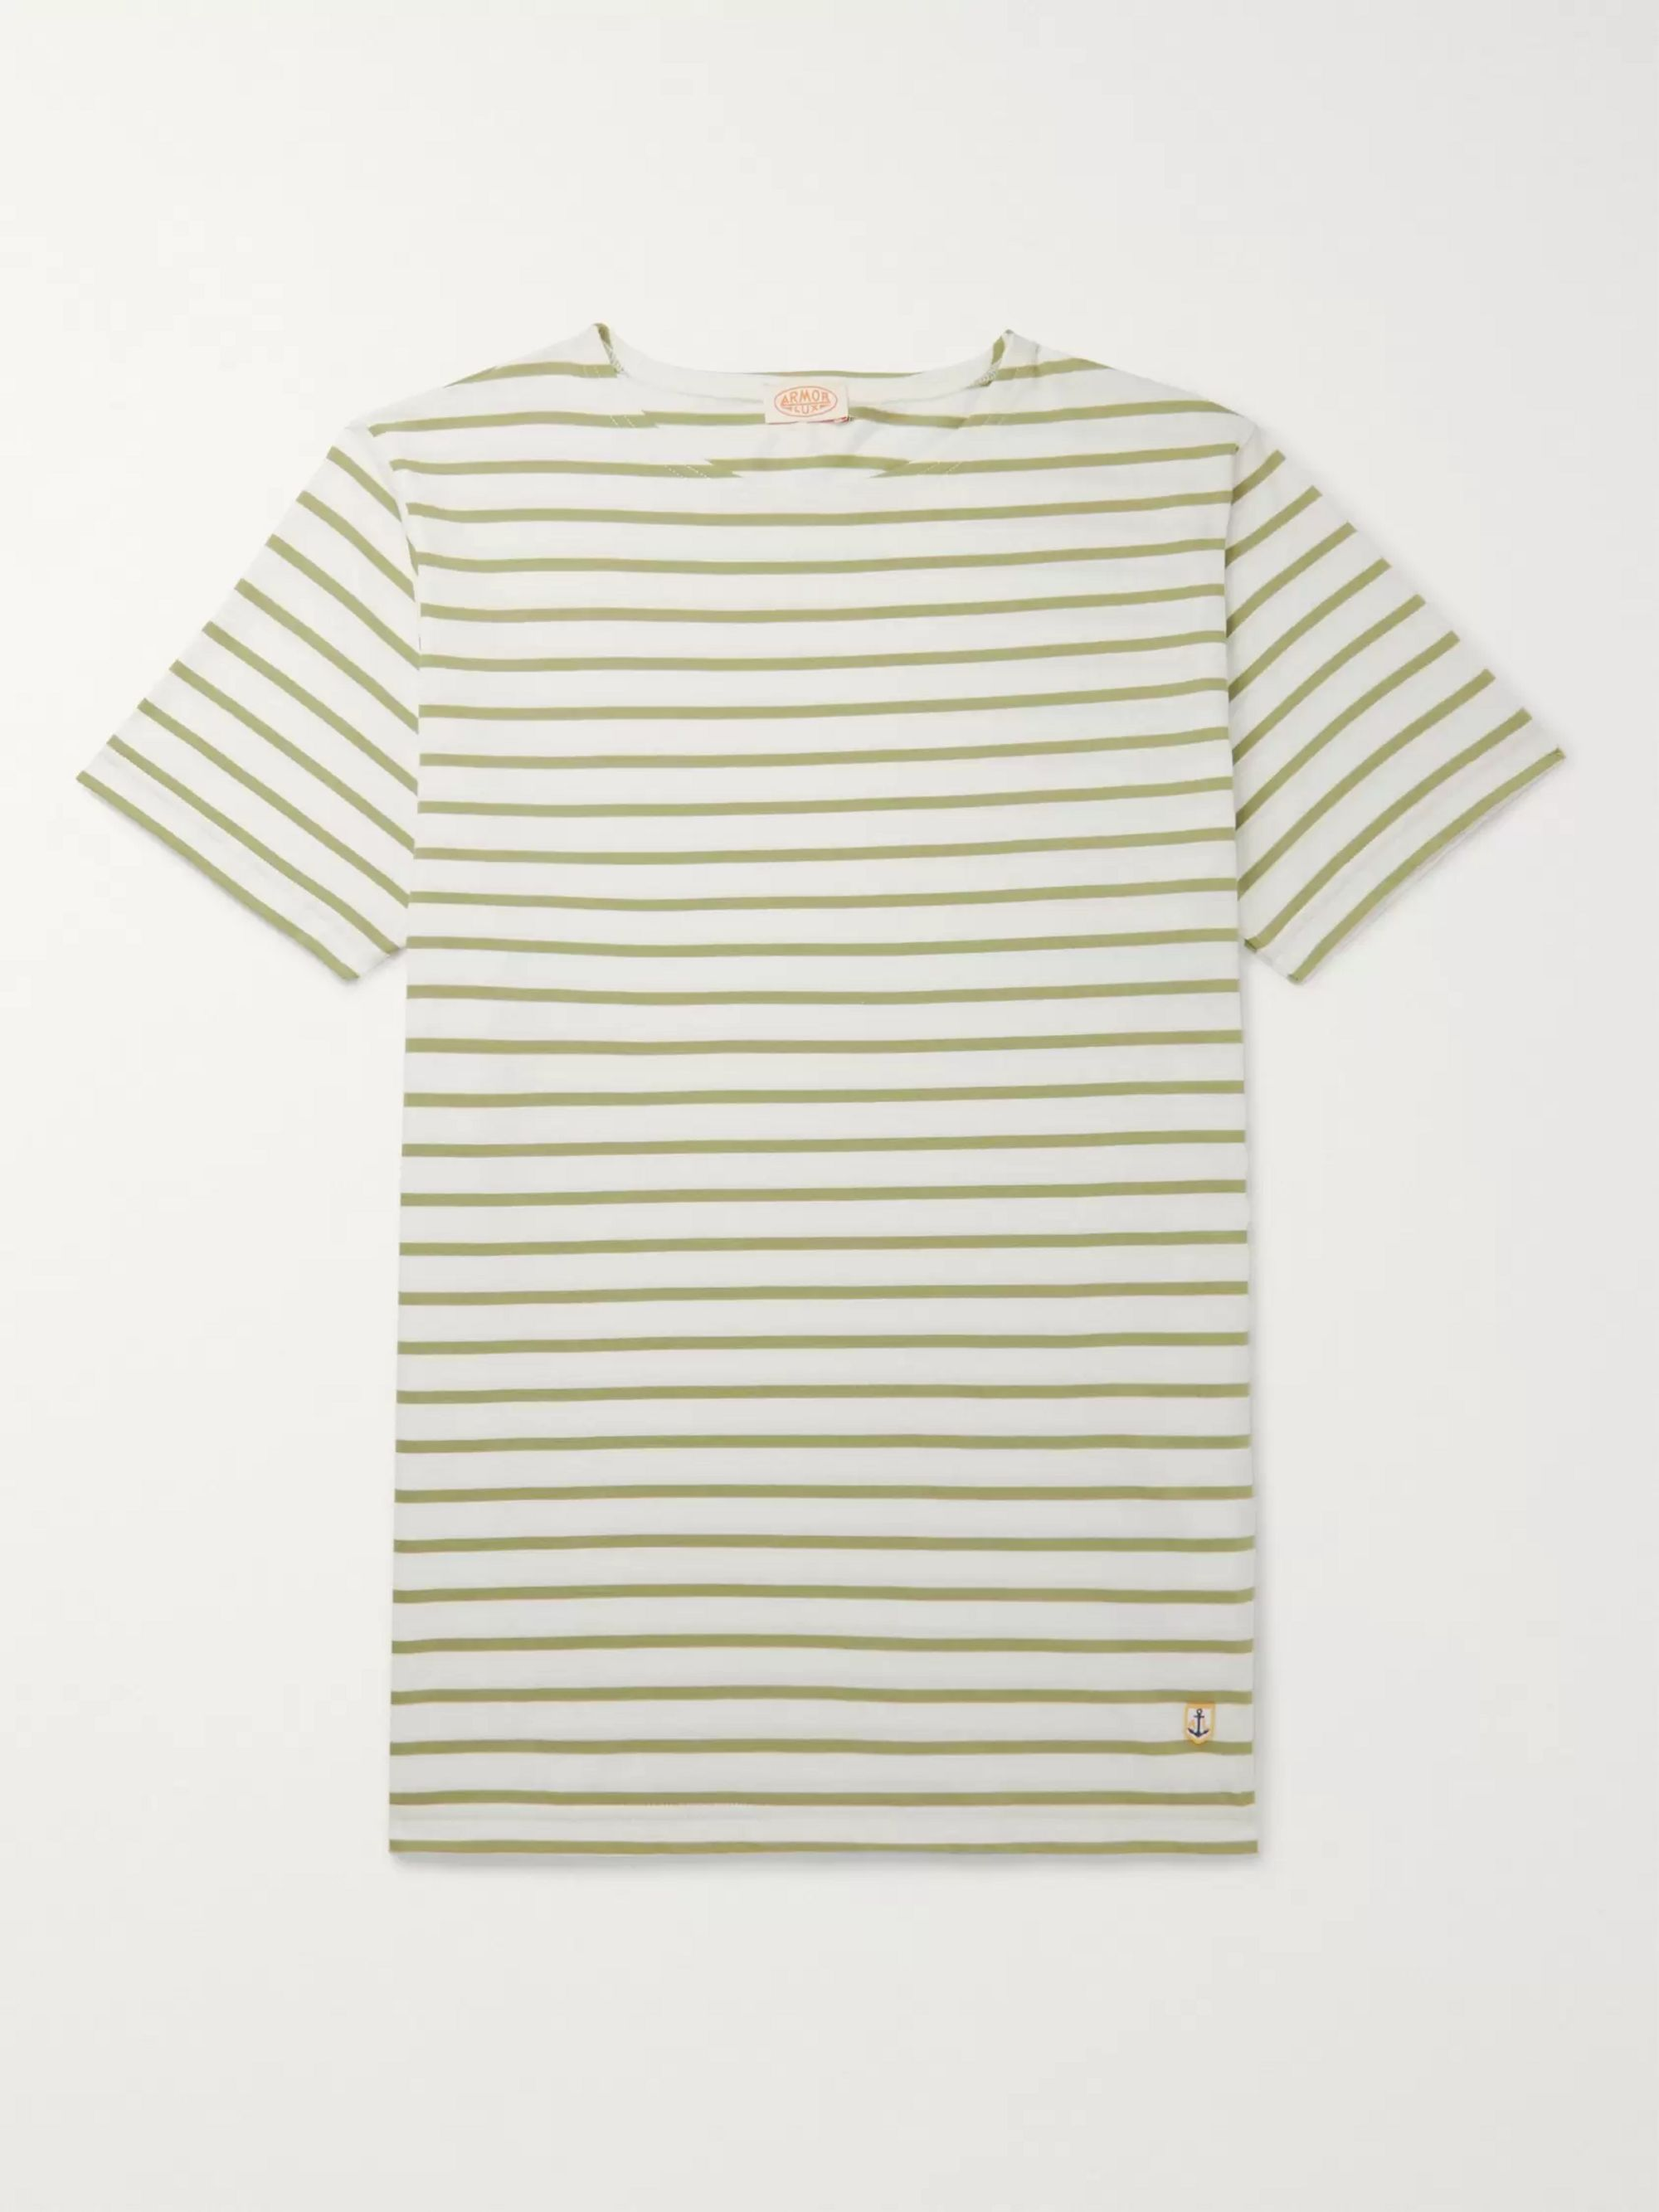 Armor Lux Slim-Fit Striped Cotton-Jersey T-Shirt